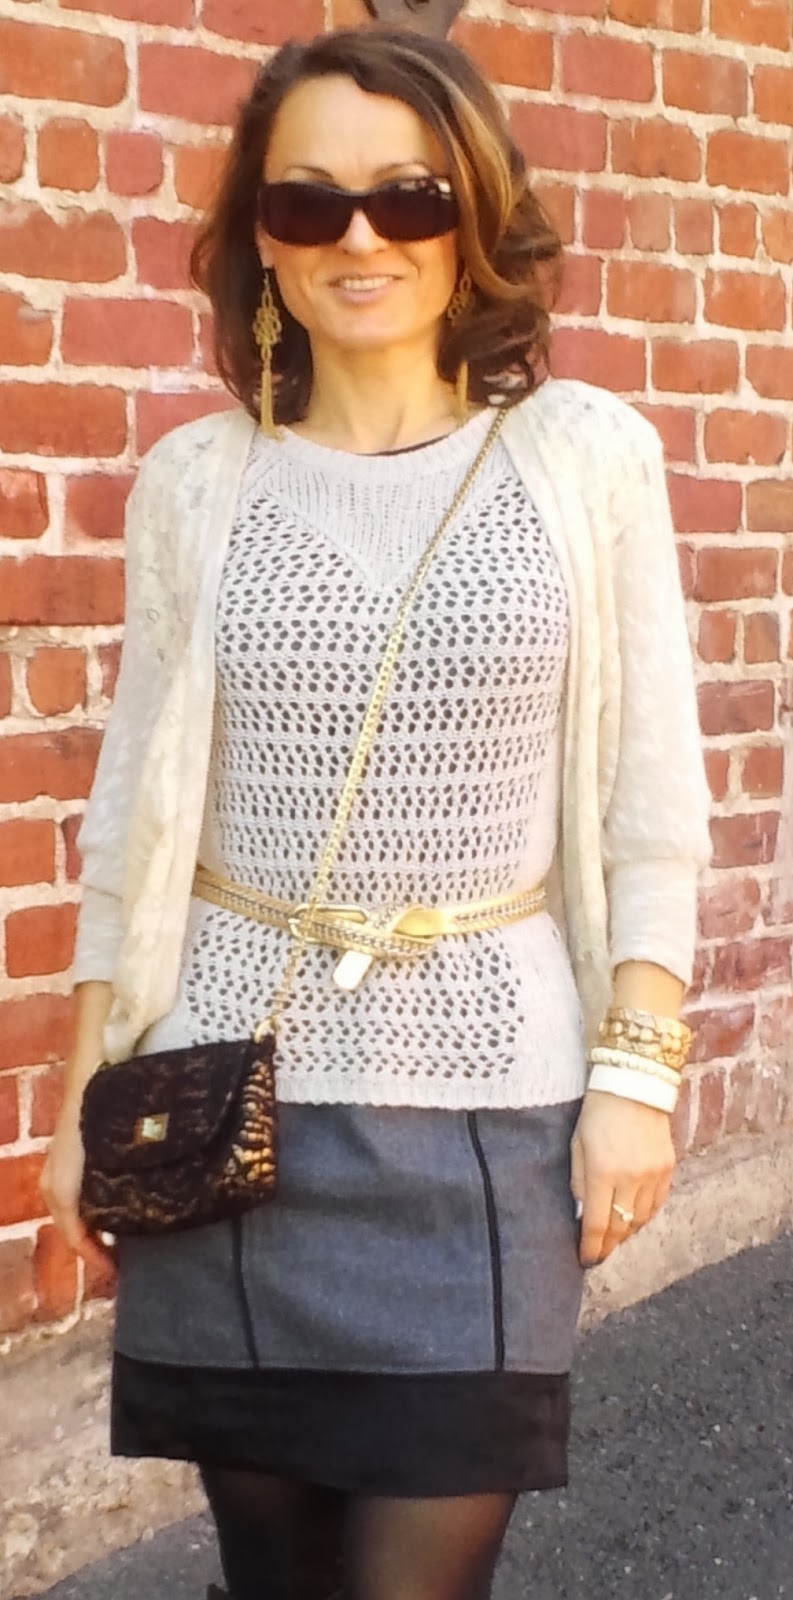 blog.oanasinga.com-outfit-ideas-personal-style-photos-wearing-lace-black-grey-gold-layering-gold-accessories-1